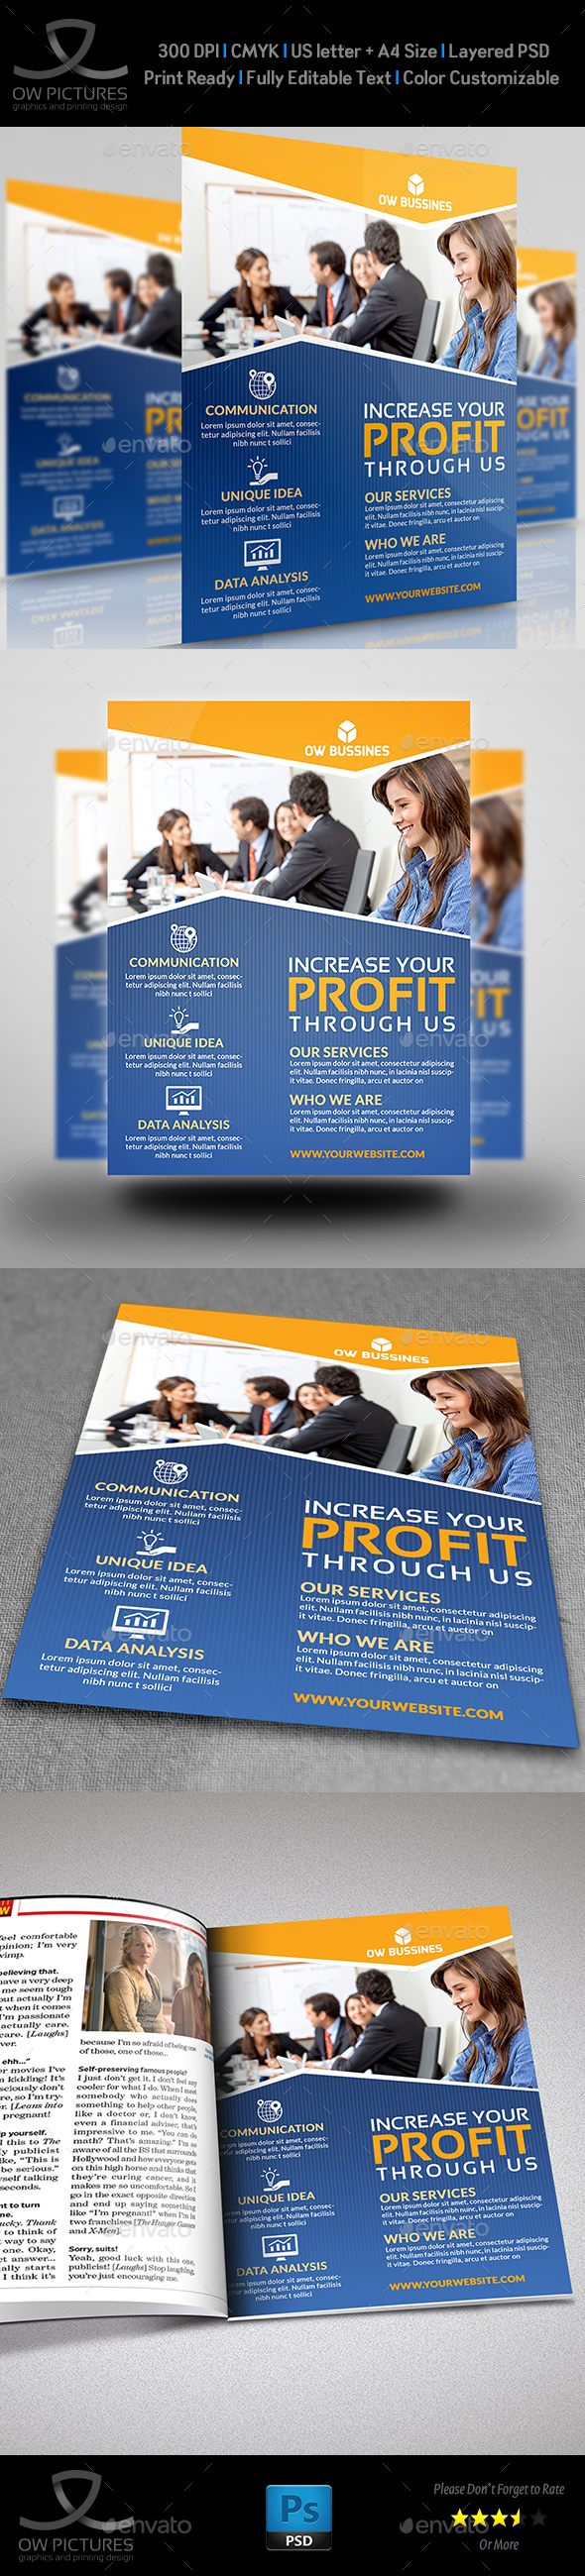 Corporate Business Flyer Template Vol.19 - Corporate Flyers